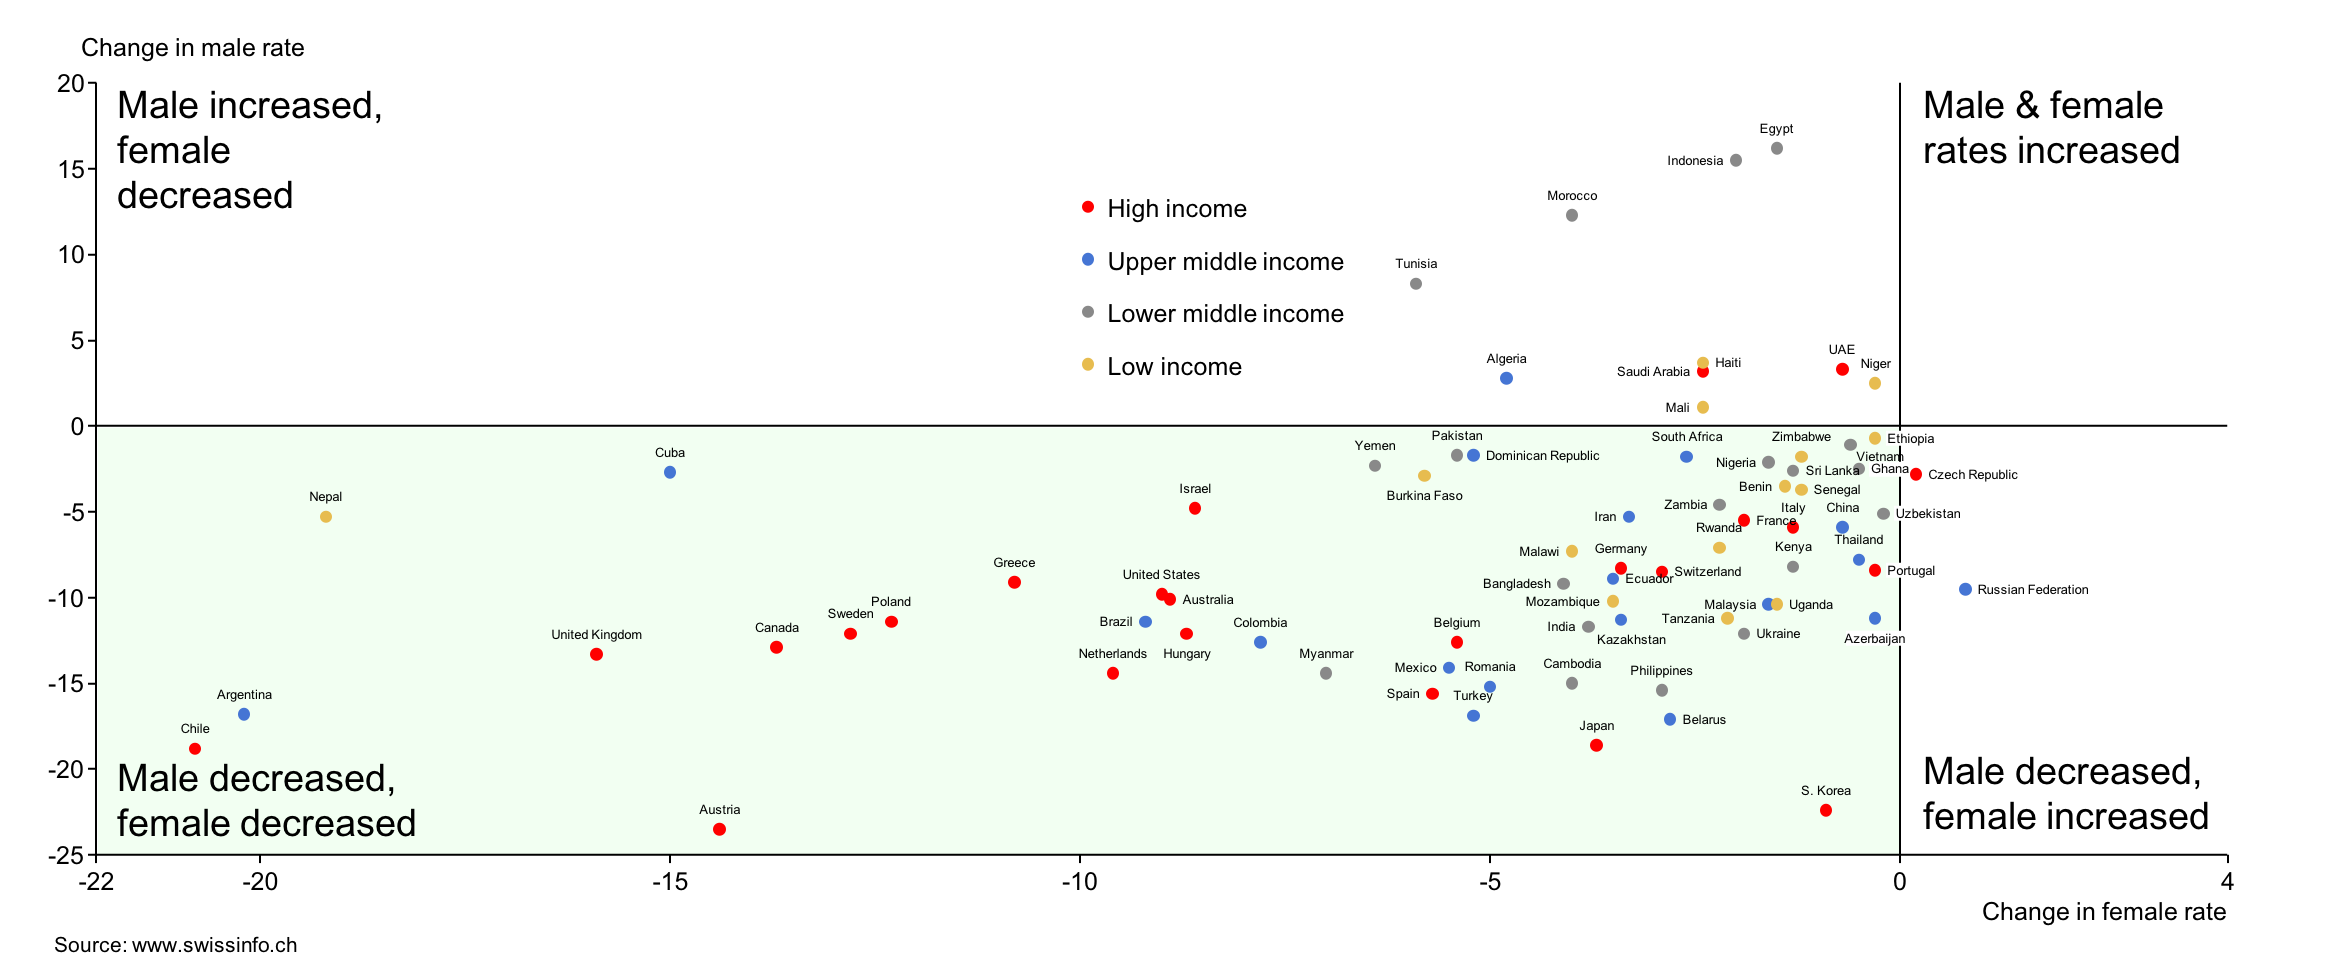 2x2 scatter plot showing change in smoking rates in different countries